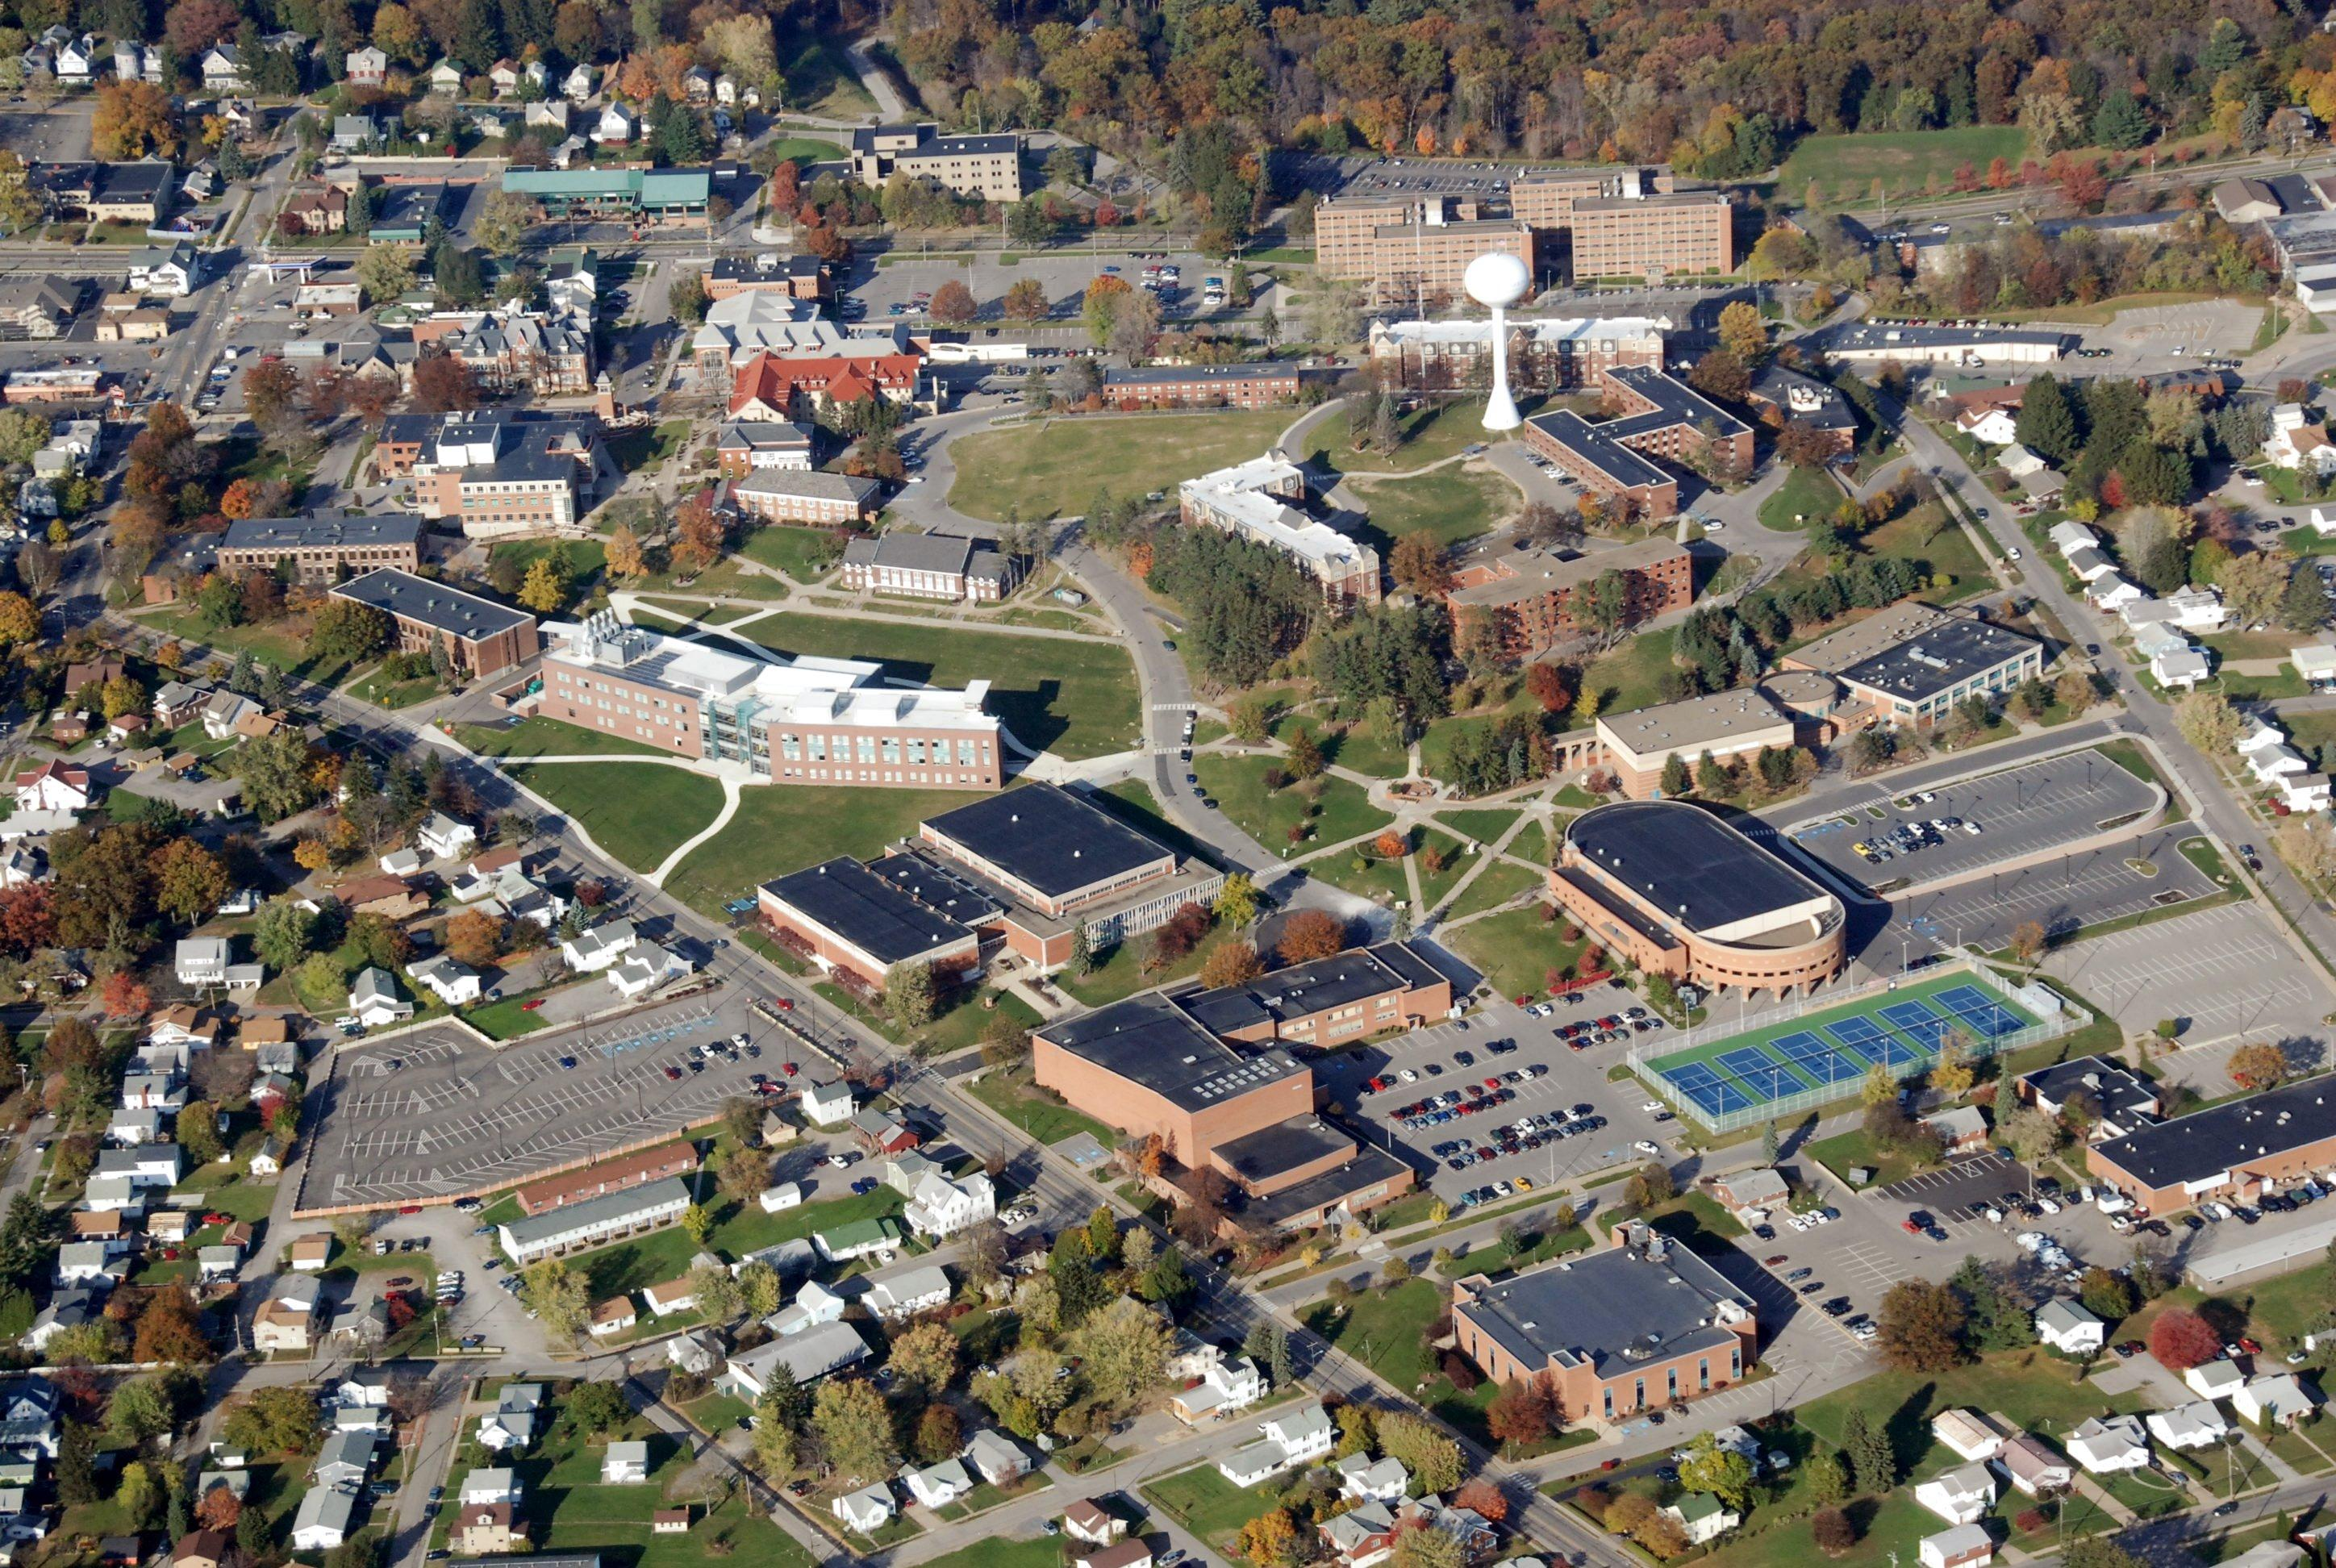 clarion university campus map Campus Maps And Directions clarion university campus map